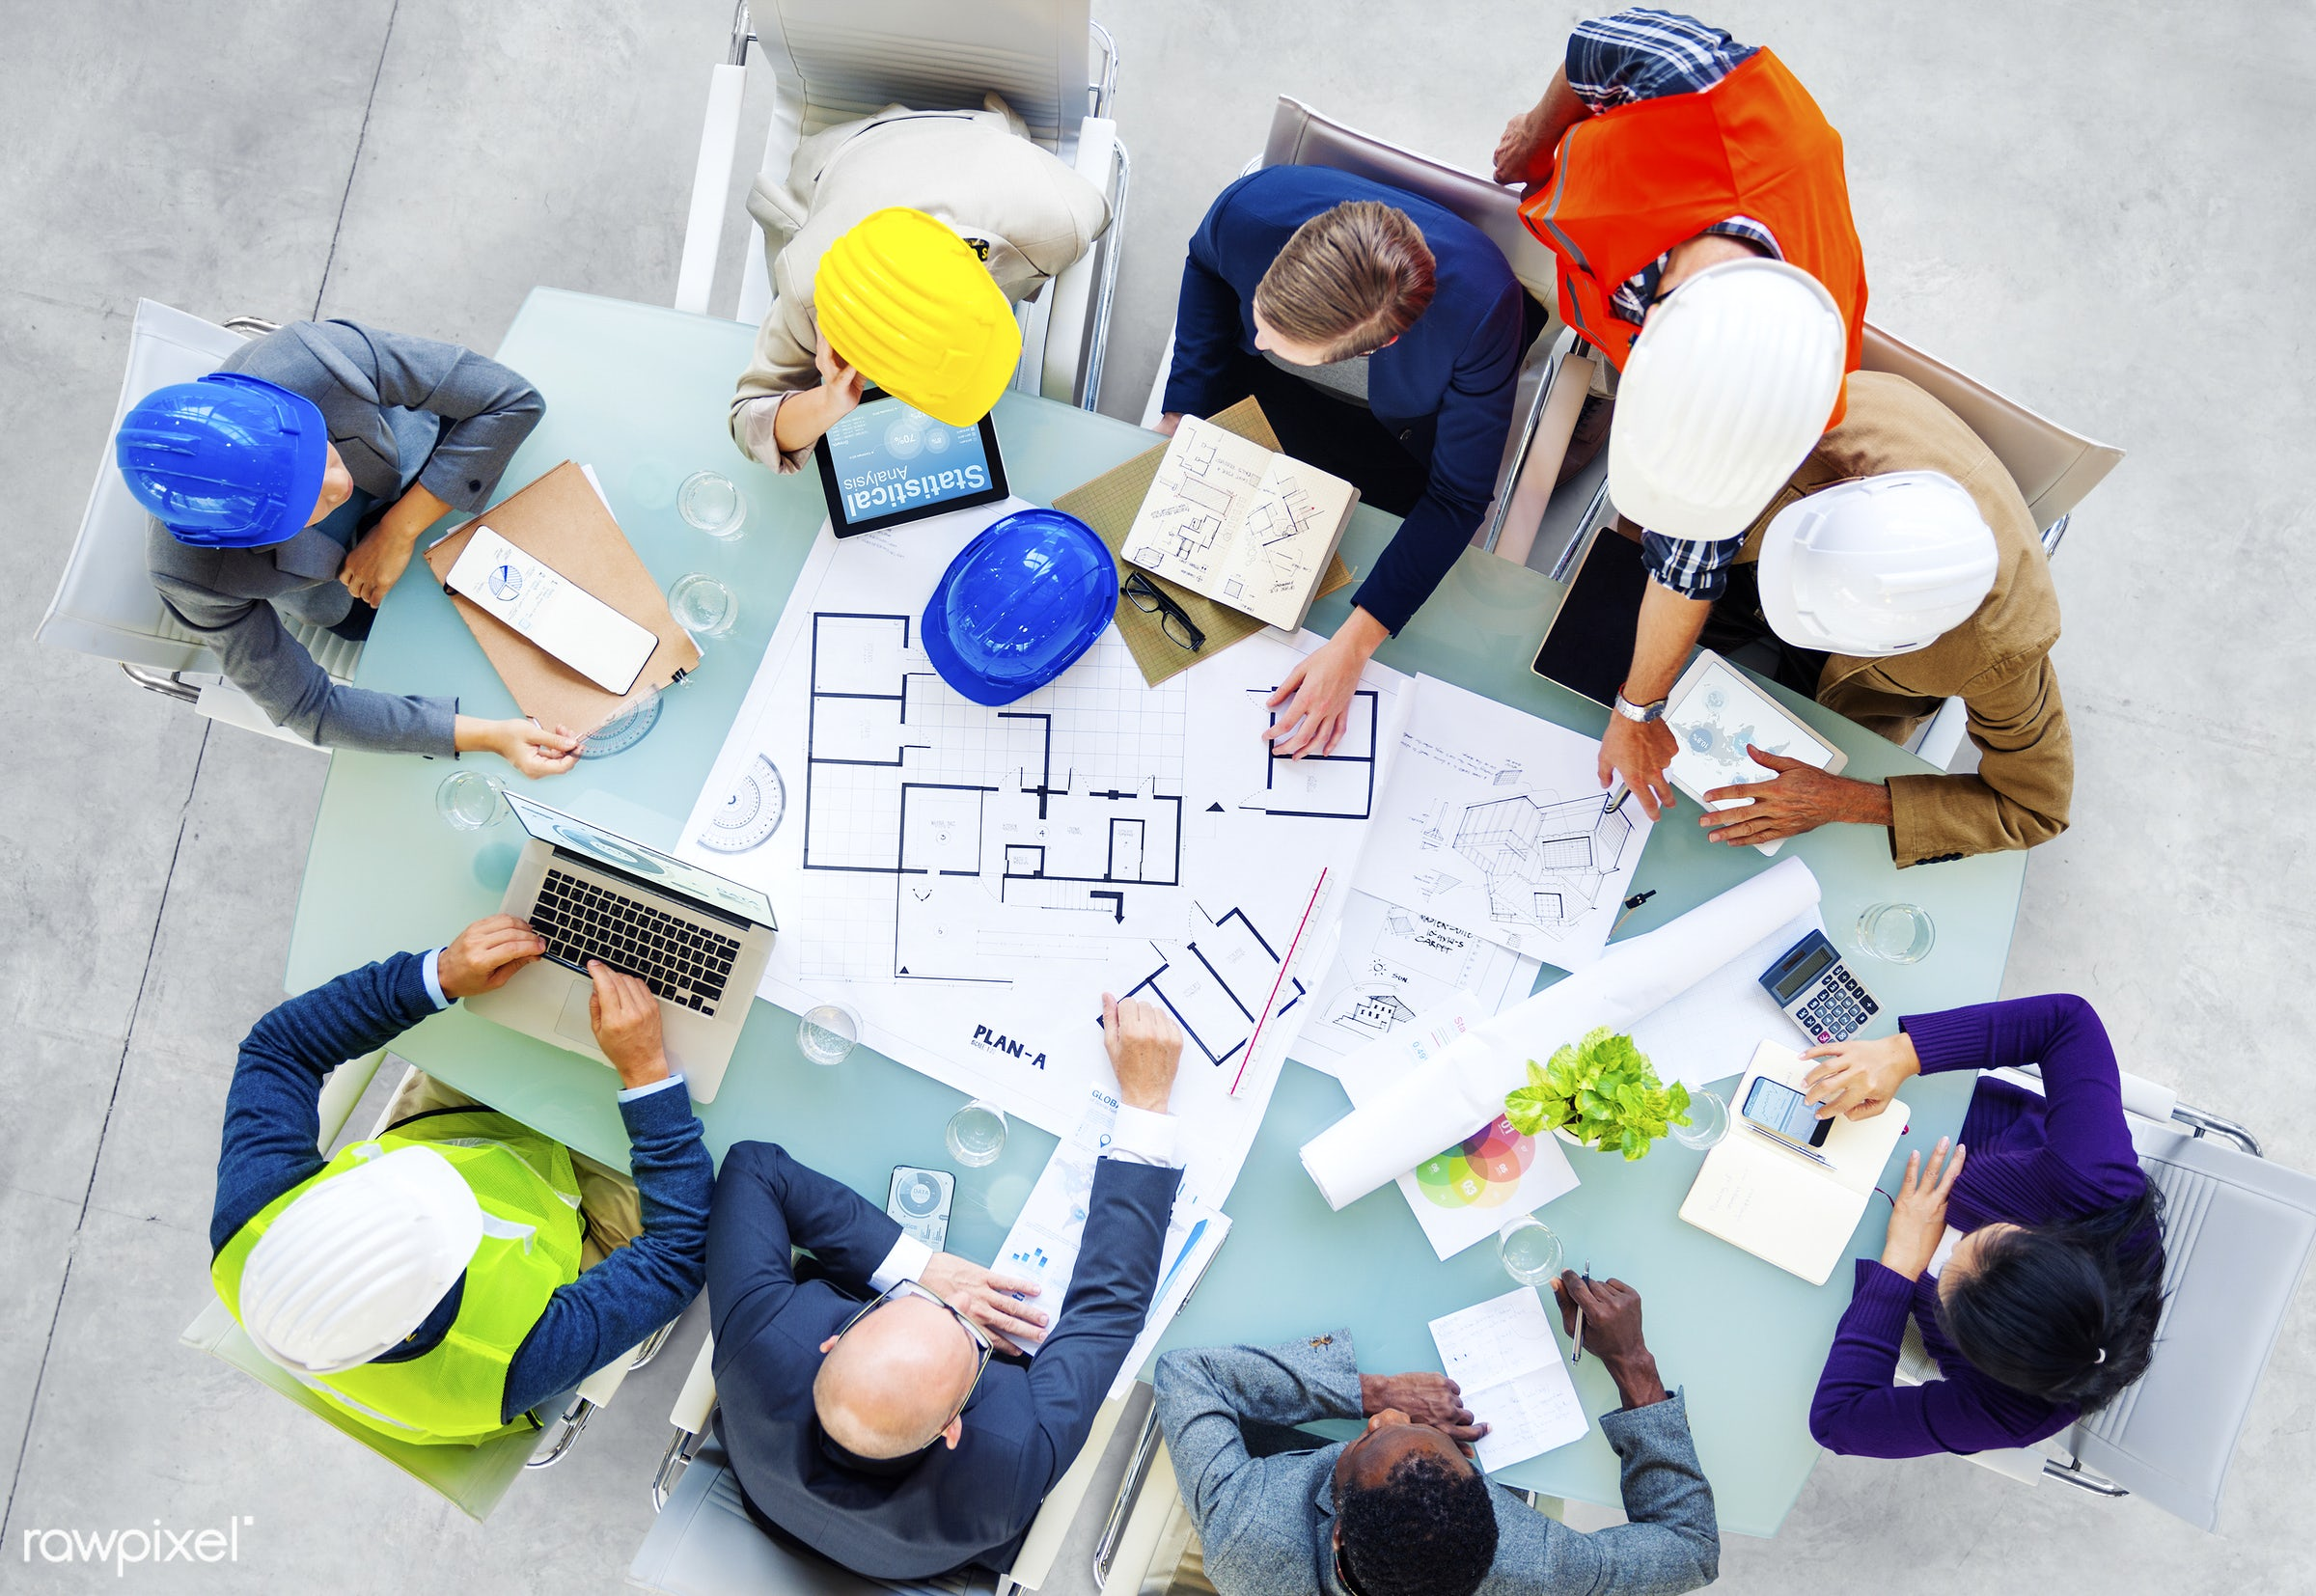 Group of site construction workers having a meeting - architect, architecture, blue print, board, brainstorm, construction,...